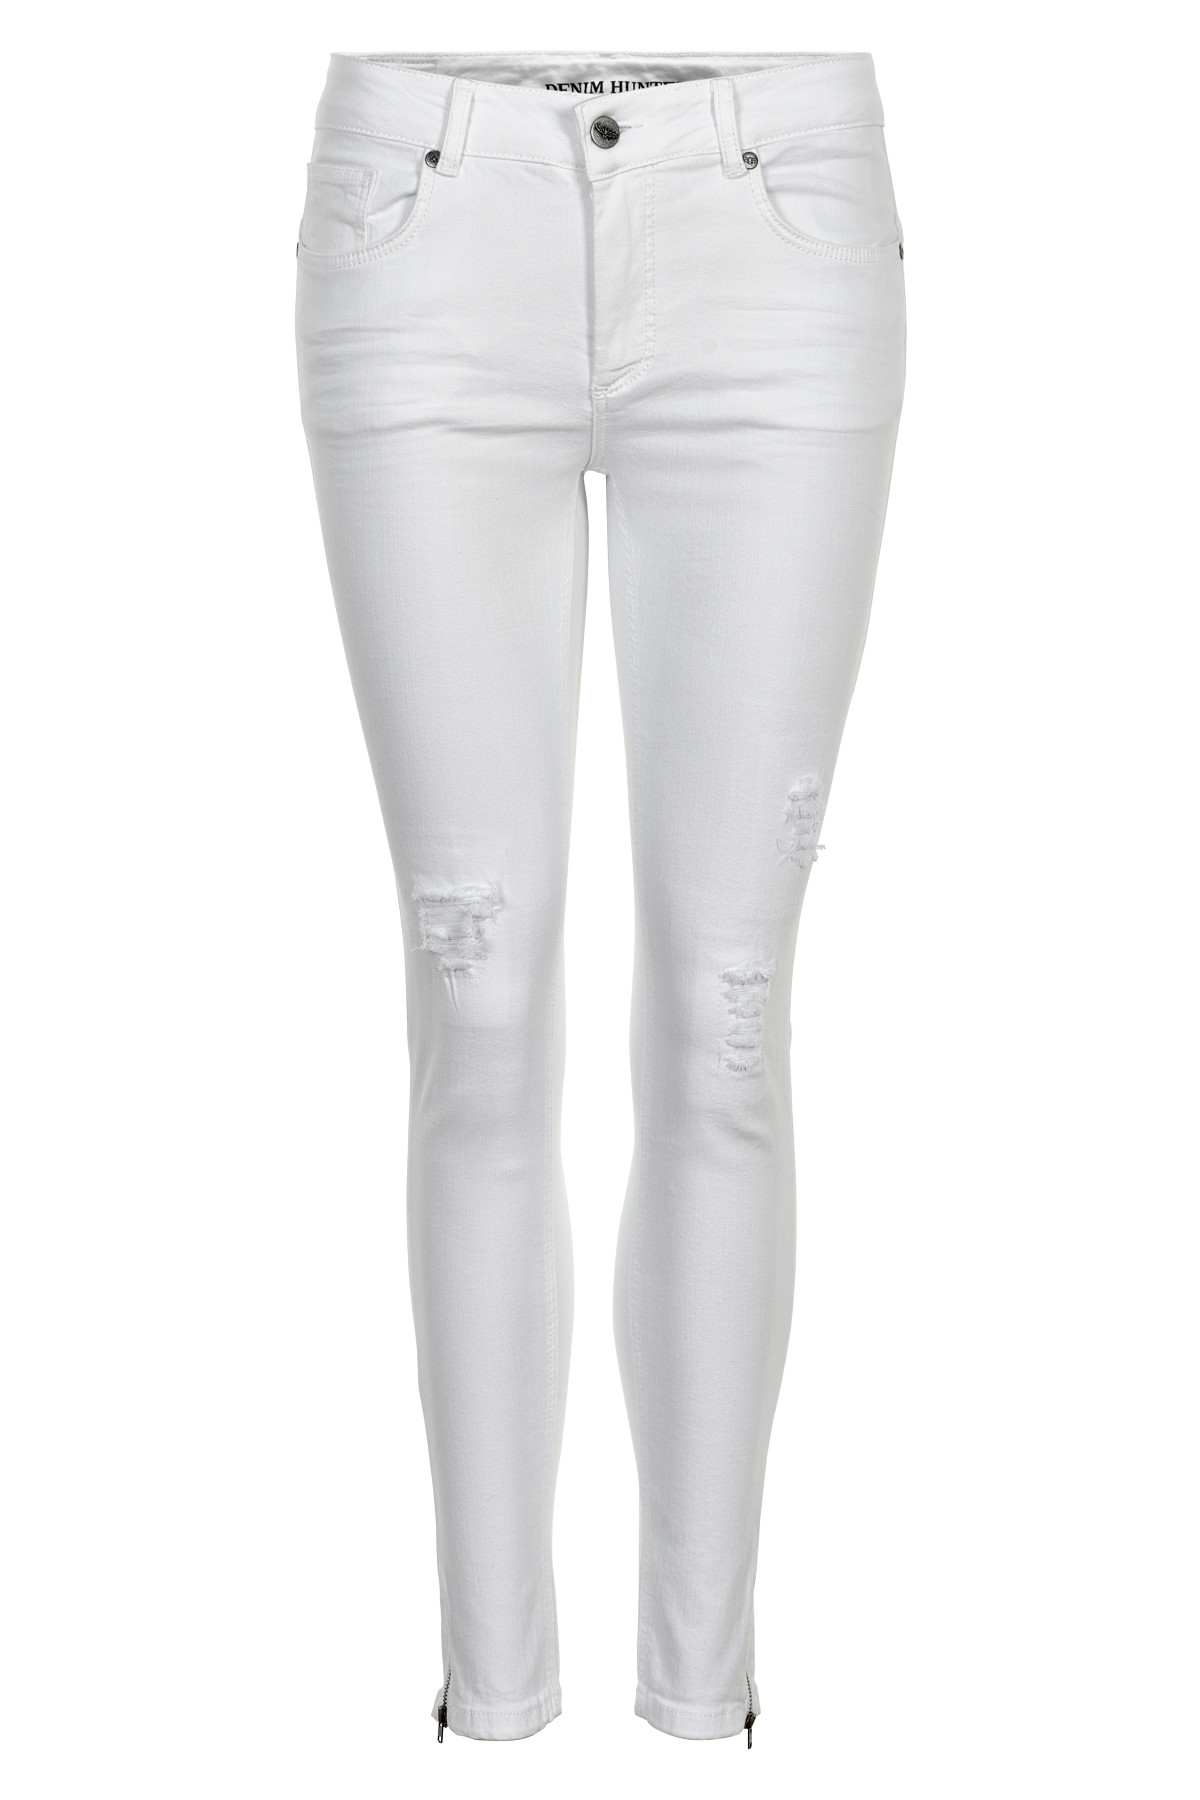 Image of   Denim Hunter CELINA ZIP TORN JEANS 10701894 O (Optical White 30001, 25)